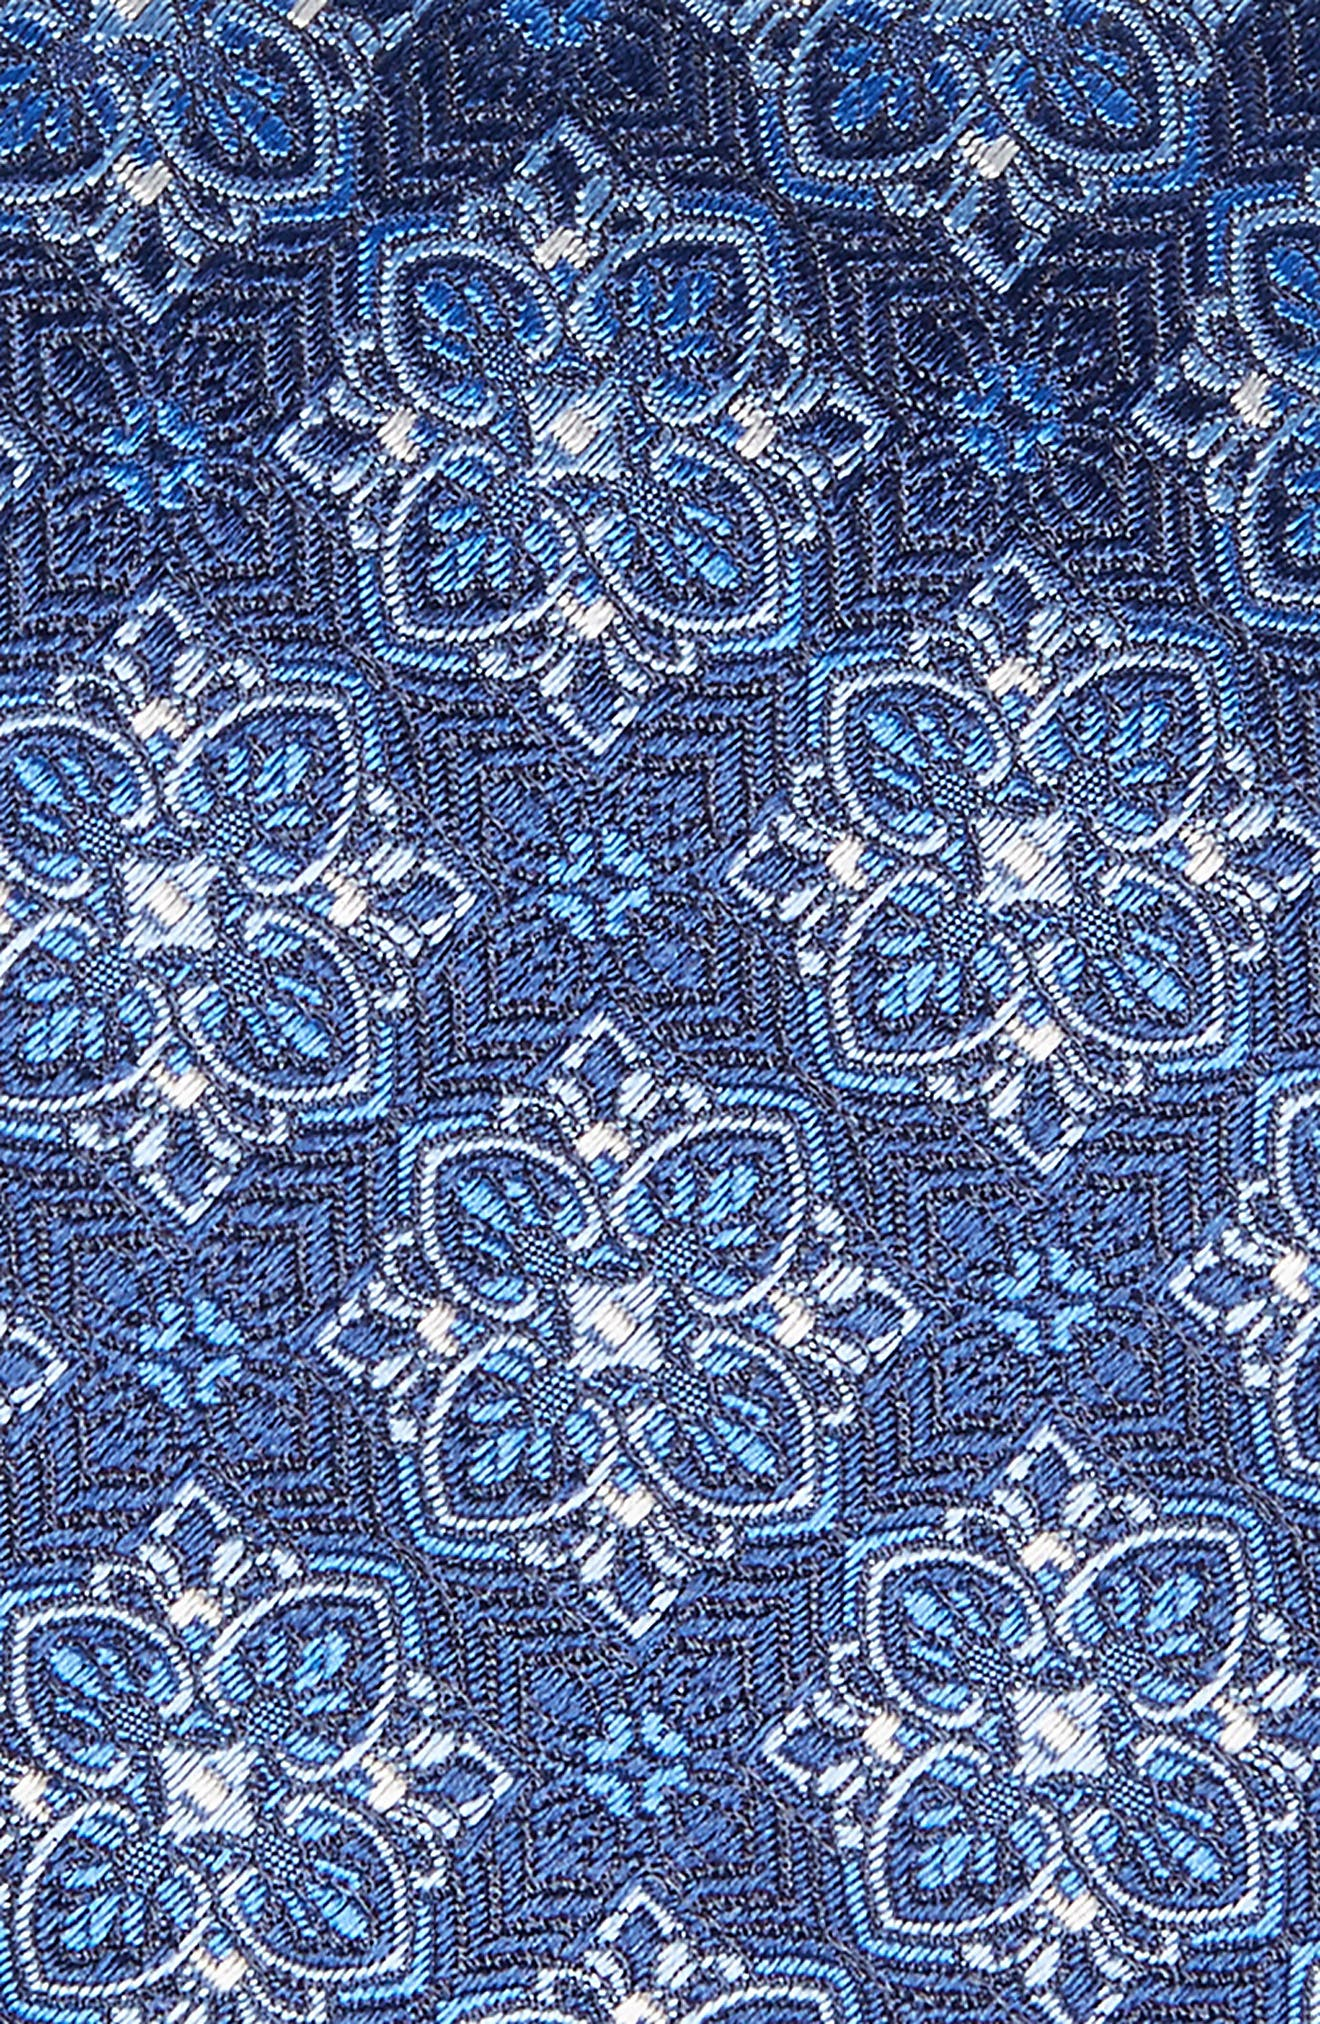 Alternate Image 2  - David Donahue Medallion Silk Tie (X-Long)